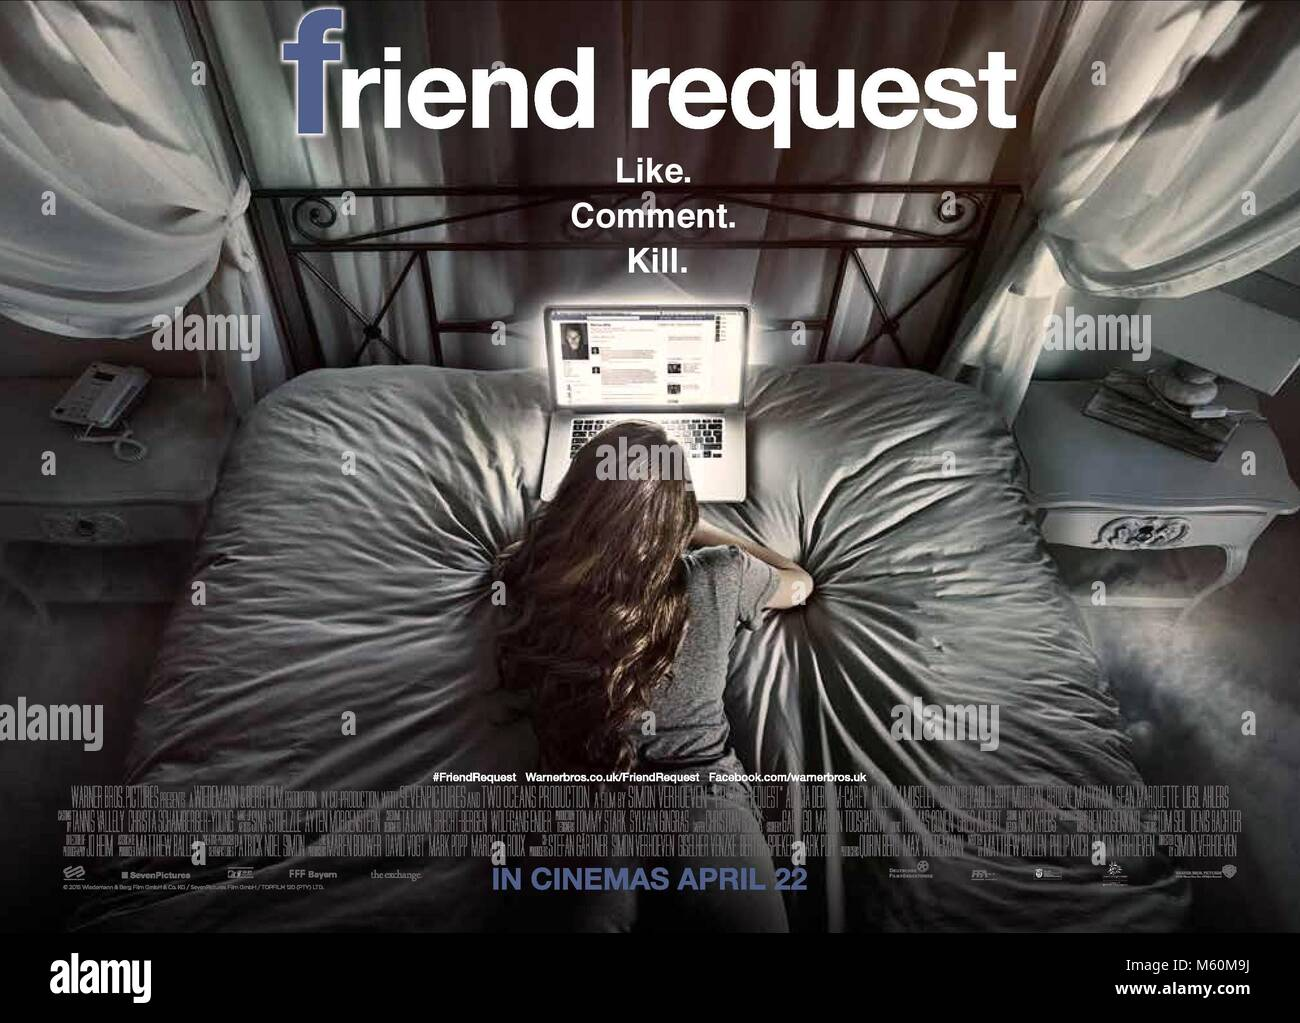 MOVIE POSTER FRIEND REQUEST (2016) - Stock Image